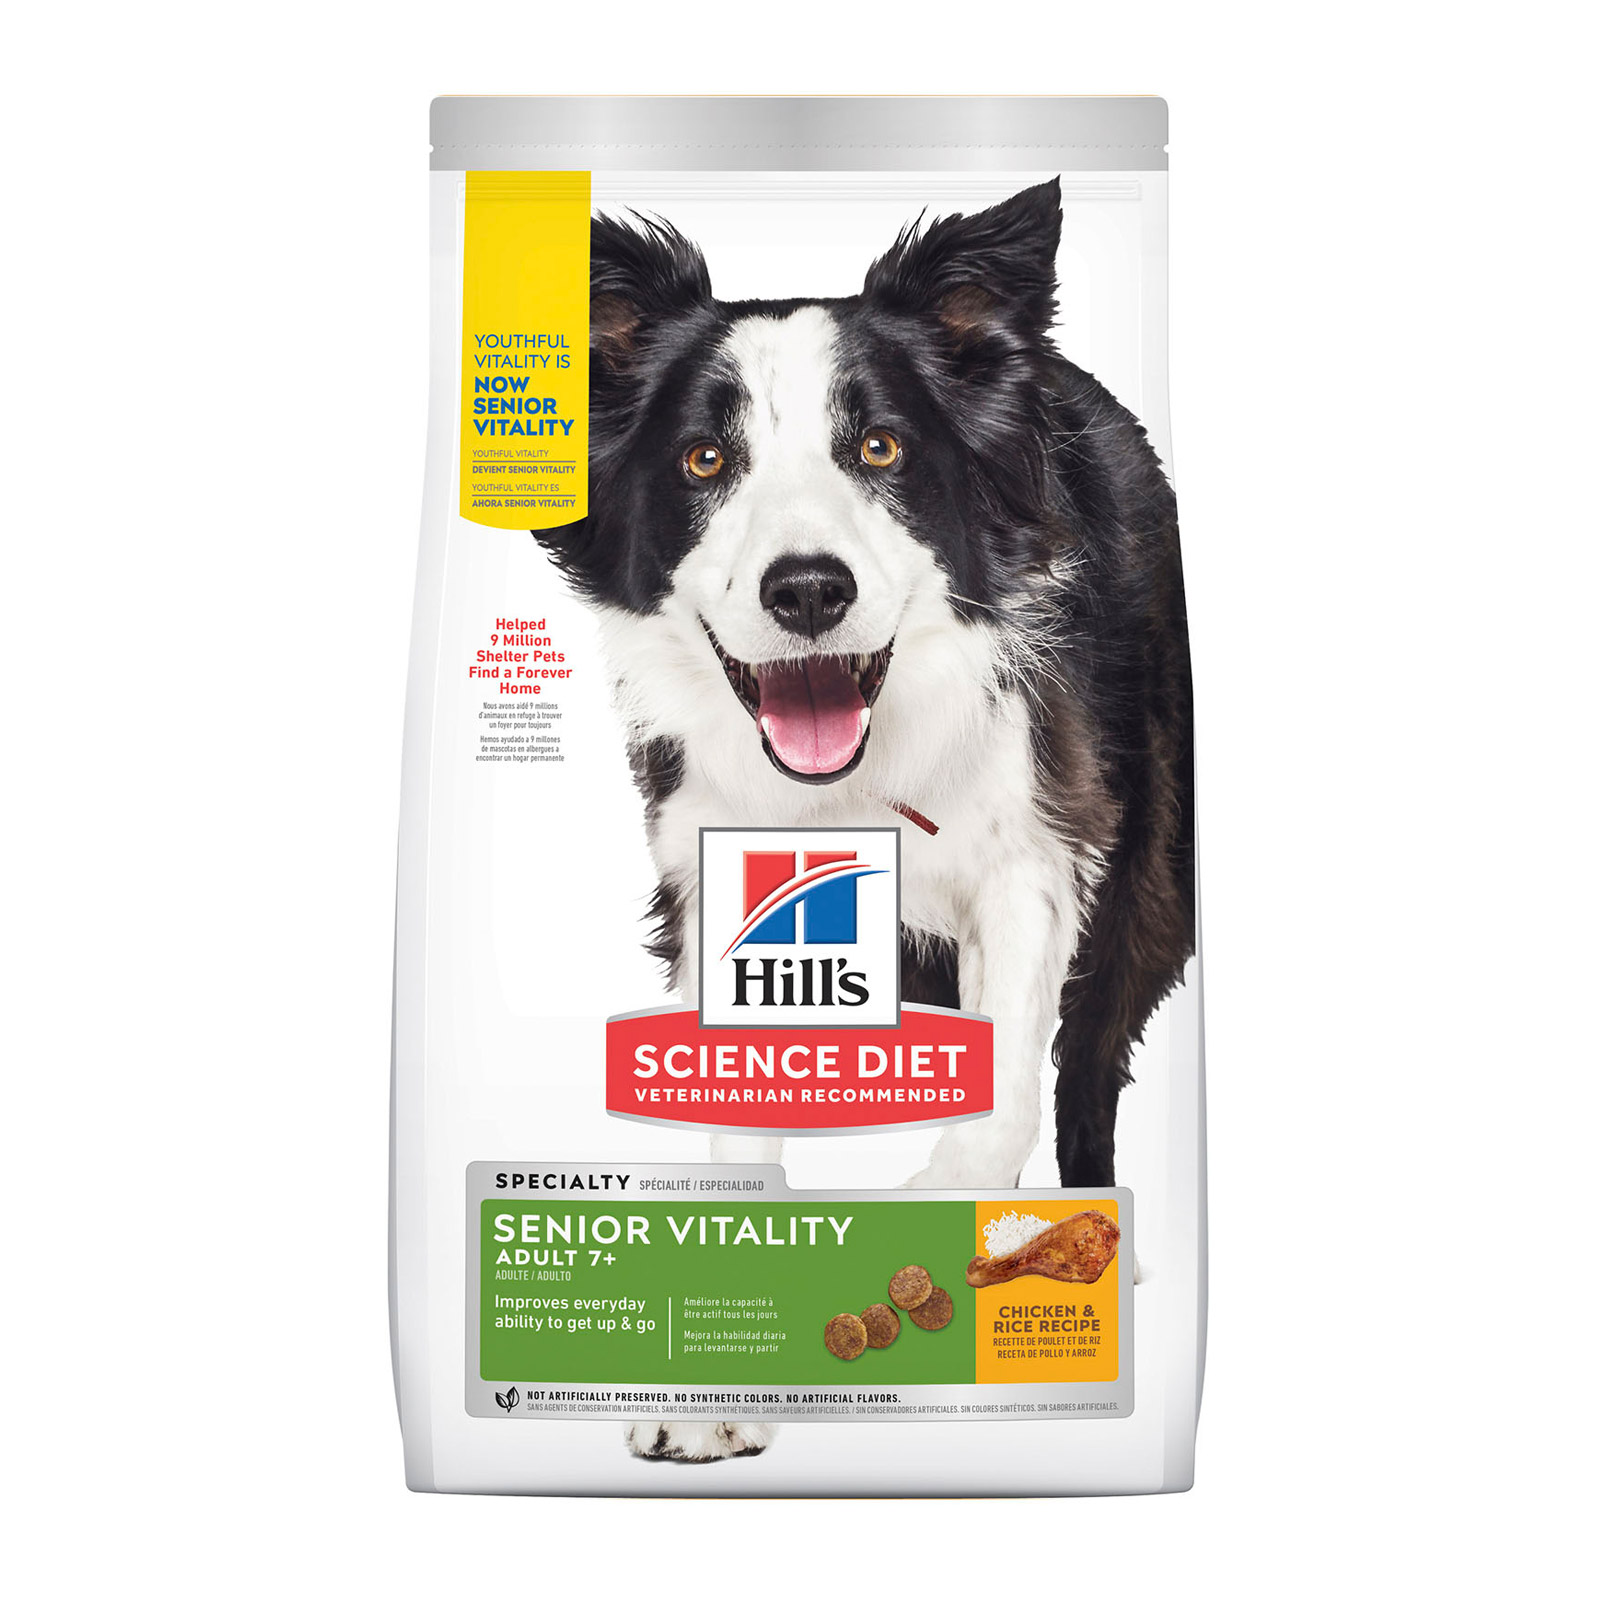 Hill's Science Diet Adult 7+ Youthful Vitality with Chicken & Rice Dry Dog Food